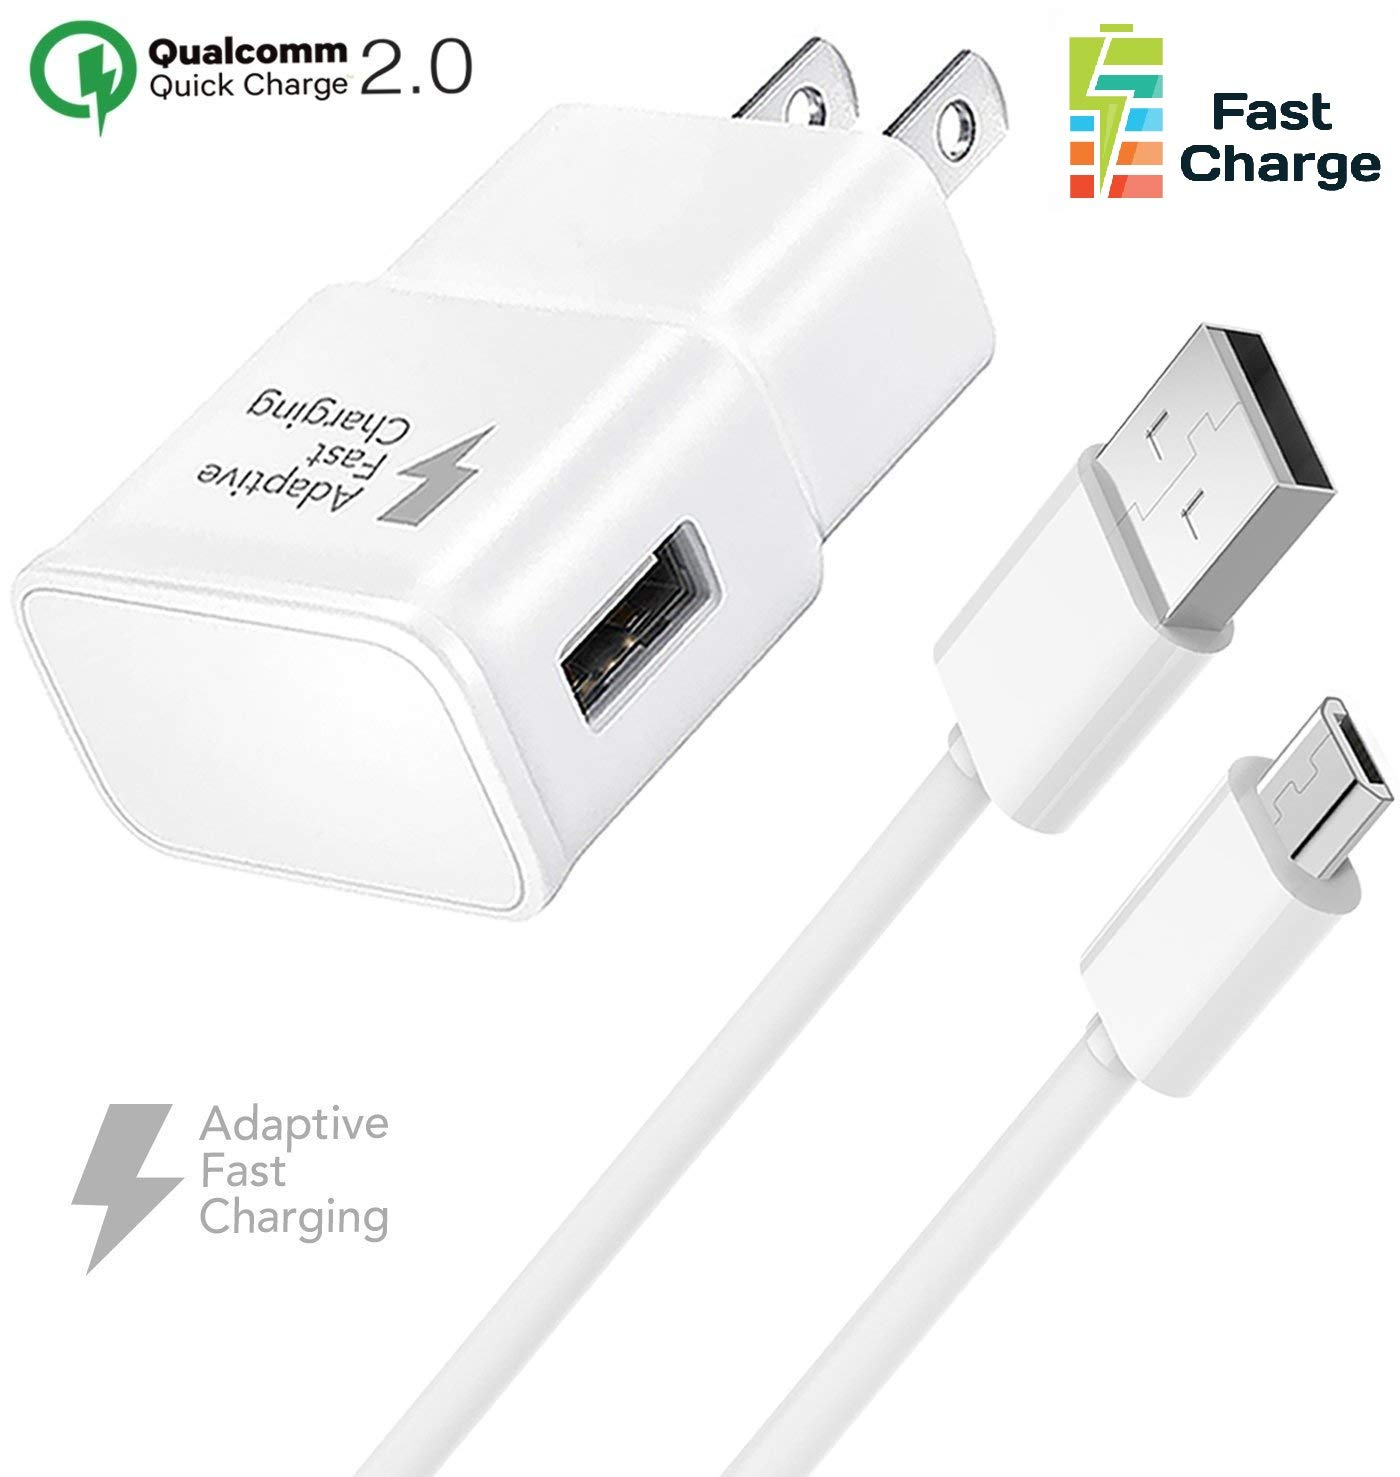 Truwire Adaptive Fast Charger Set for Samsung Galaxy S7, S7 Edge, J7, S6, S6 Edge, Note 5, Note 4, Sony, HTC, Honor Lite 10, Moto G5, and More, Wall ...